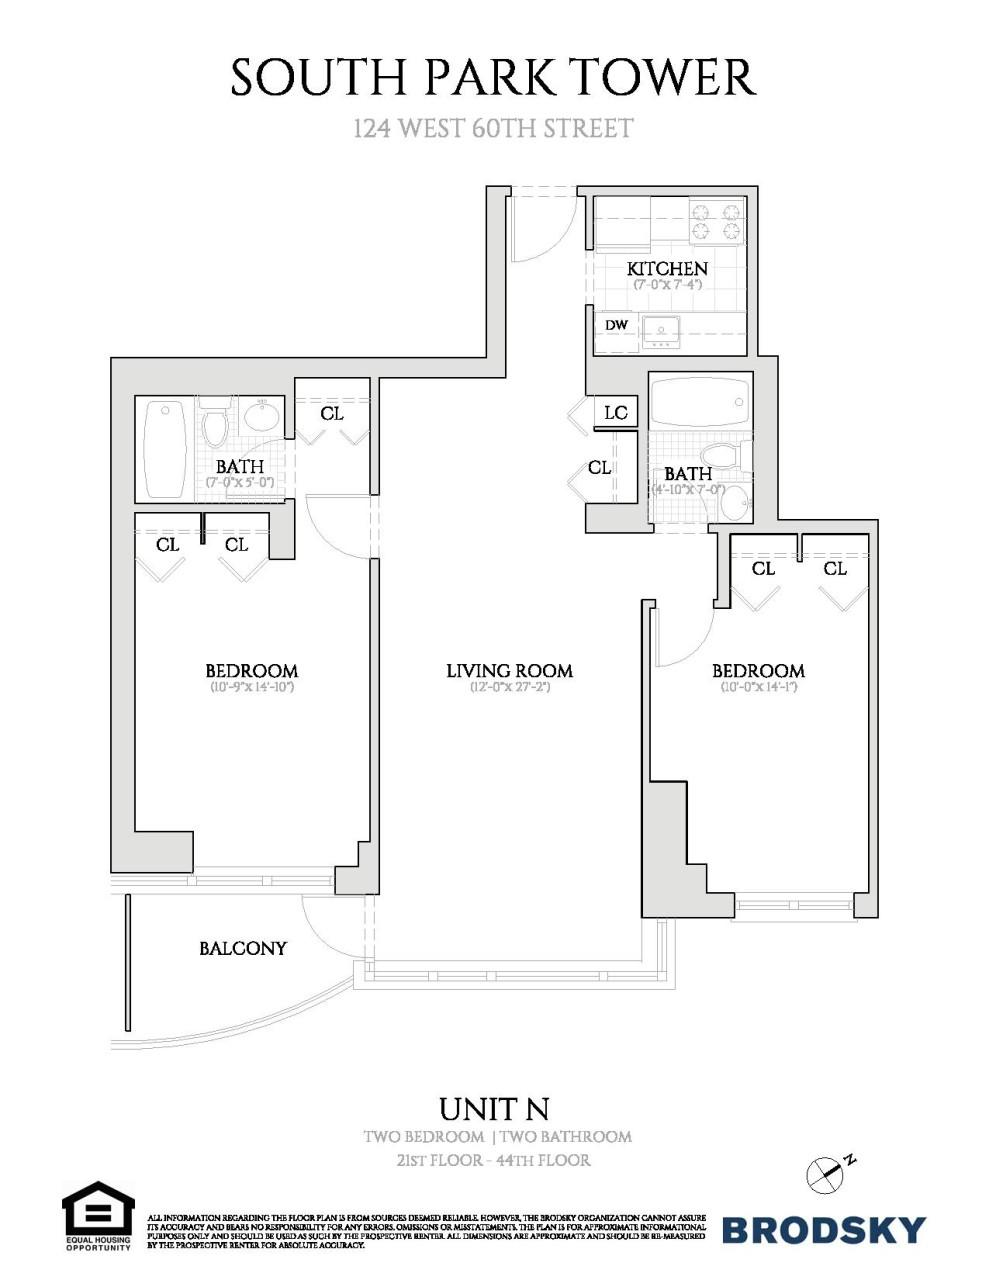 Apartments For Rent With No Rental History Check